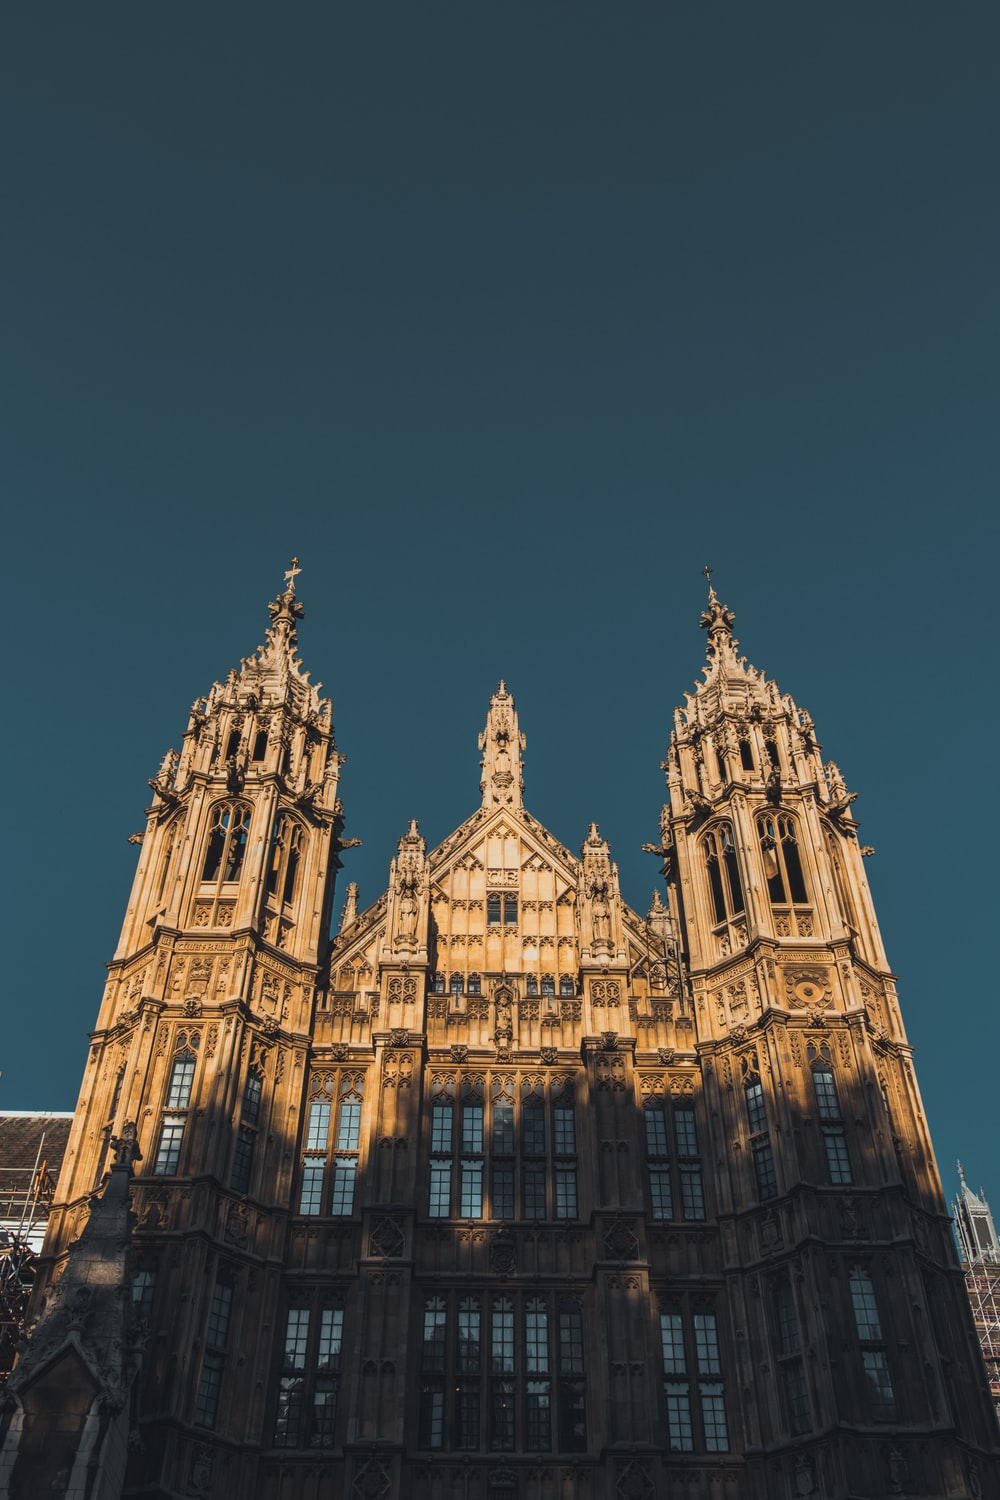 low angle photo of cathedral taken at daytime